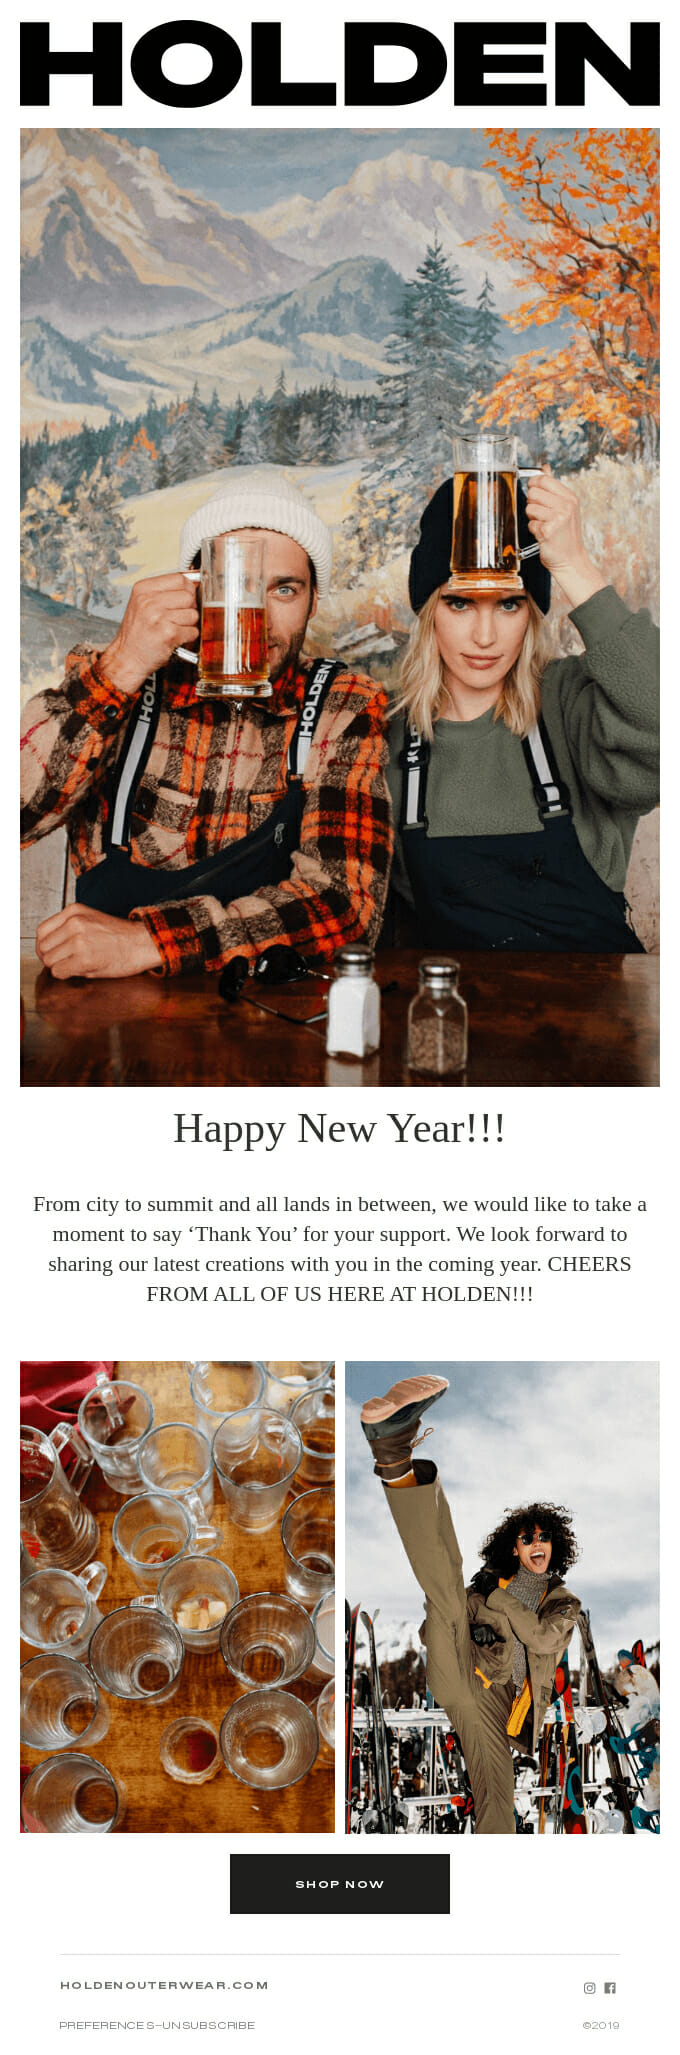 Holden Outerwear i s a newsletter Example for Fashion Lines and New Year